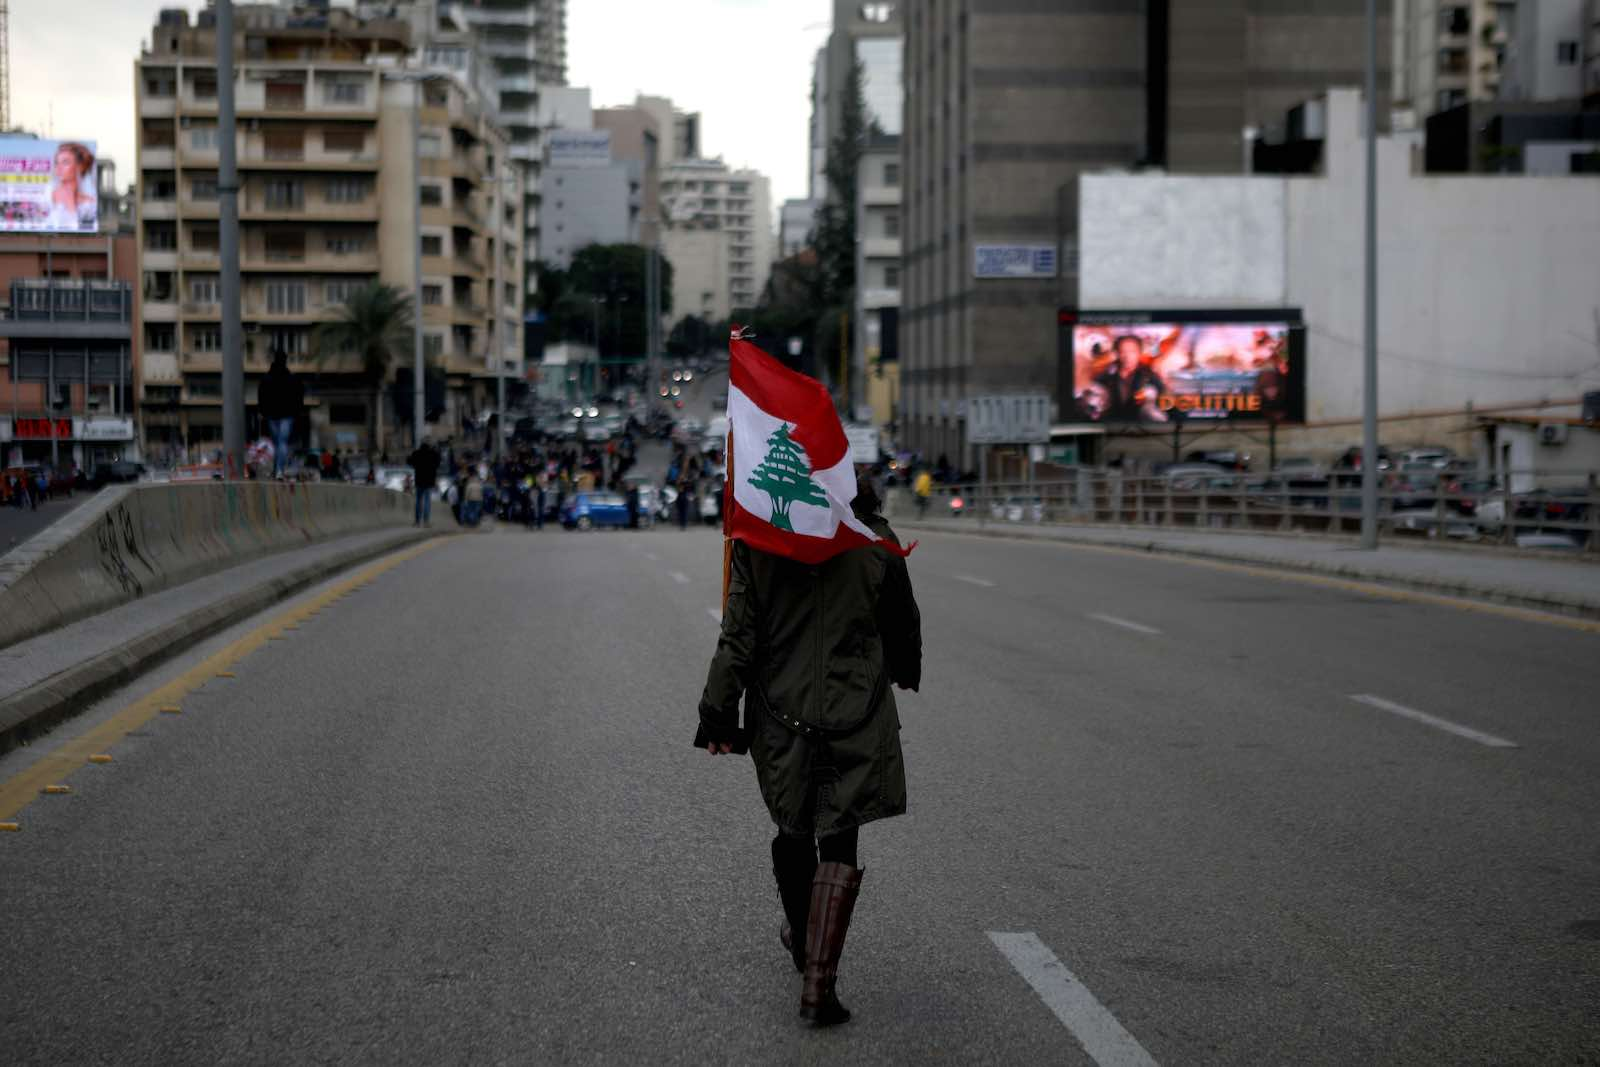 Protests in Lebanon continue against a political elite accused of corruption and incompetence (Patrick Baz/AFP/Getty Images)